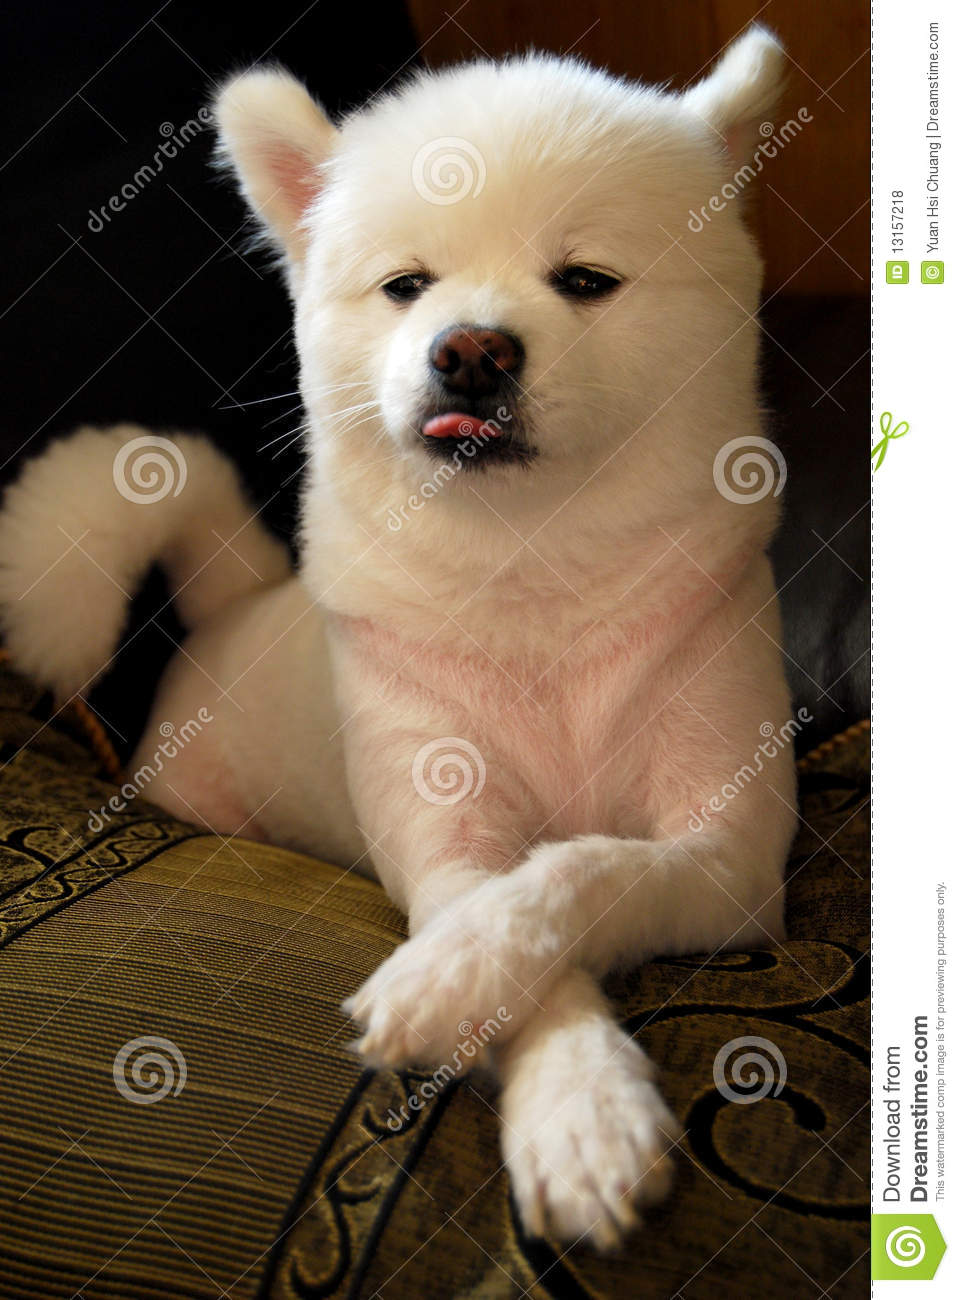 Funny Dog Face Expression Royalty Free Stock Photos